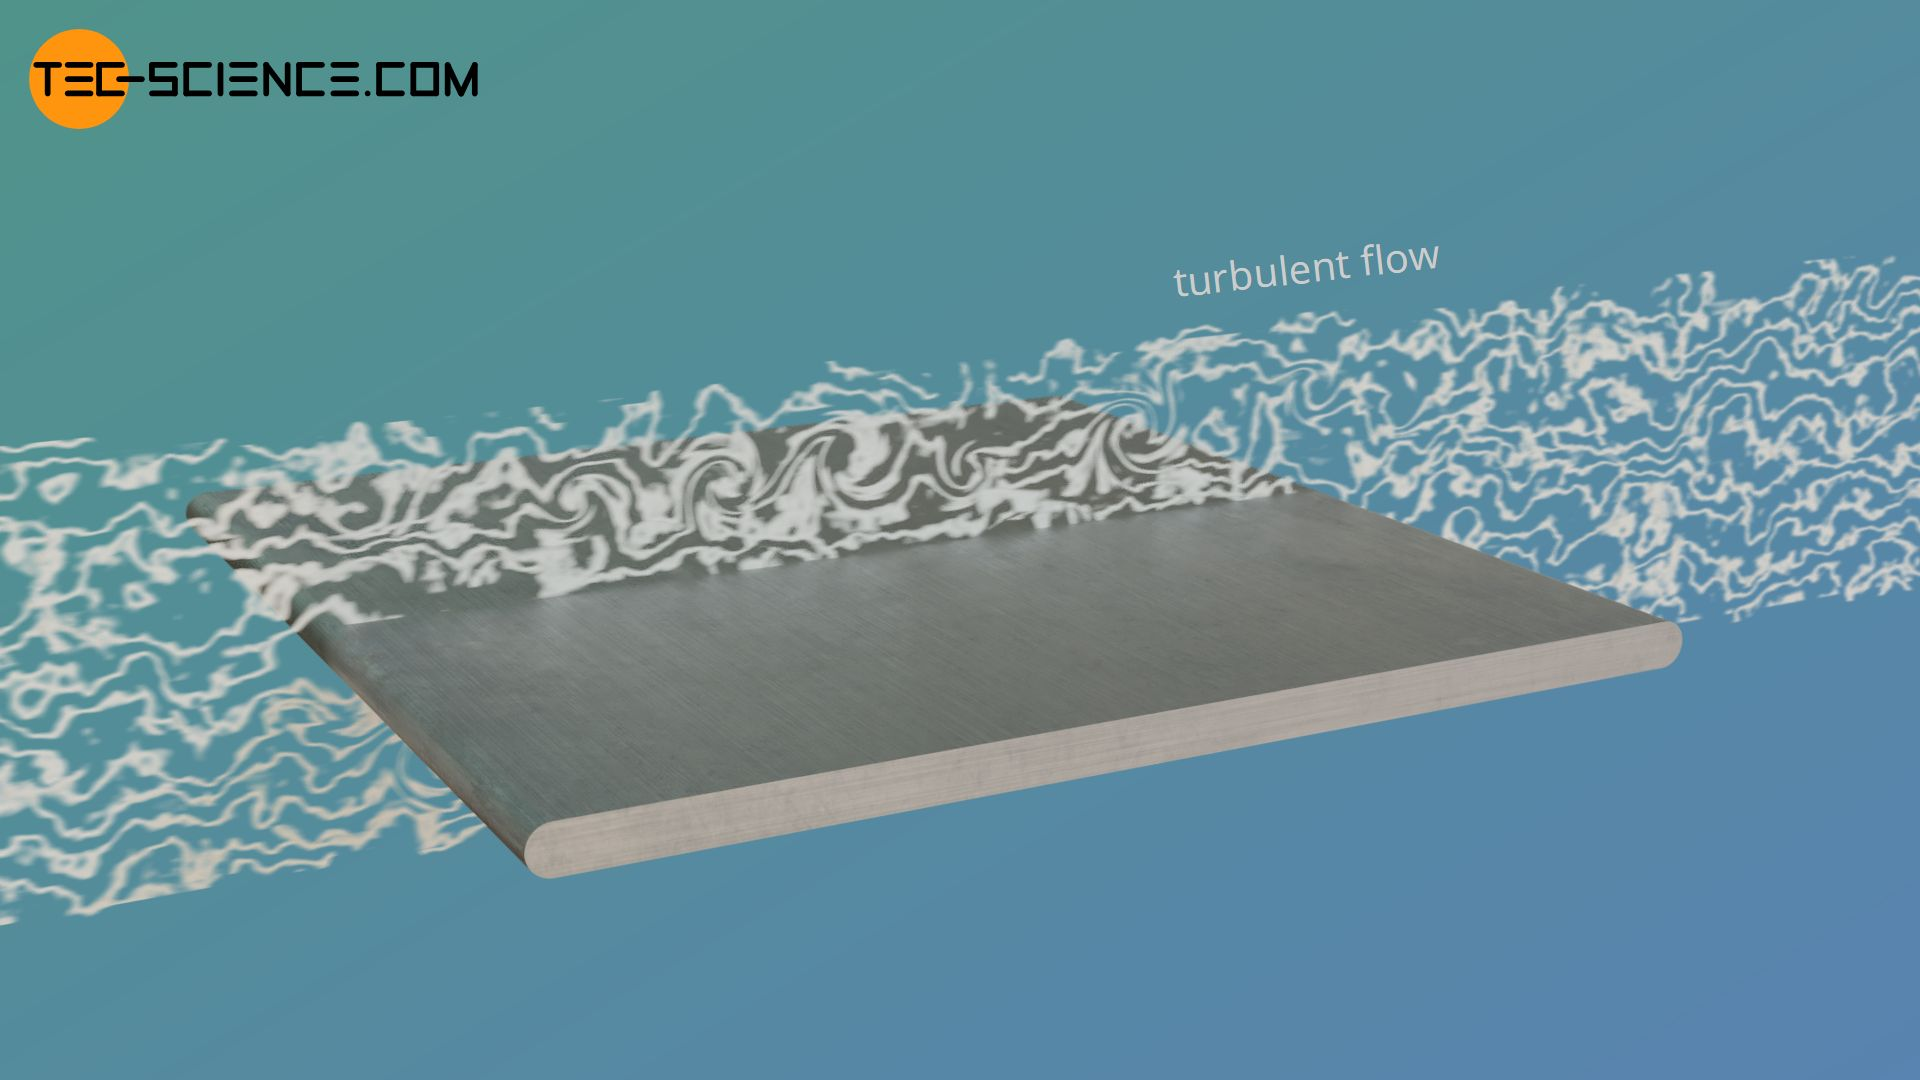 Convective heat transfer at a flat plate with turbulent flow